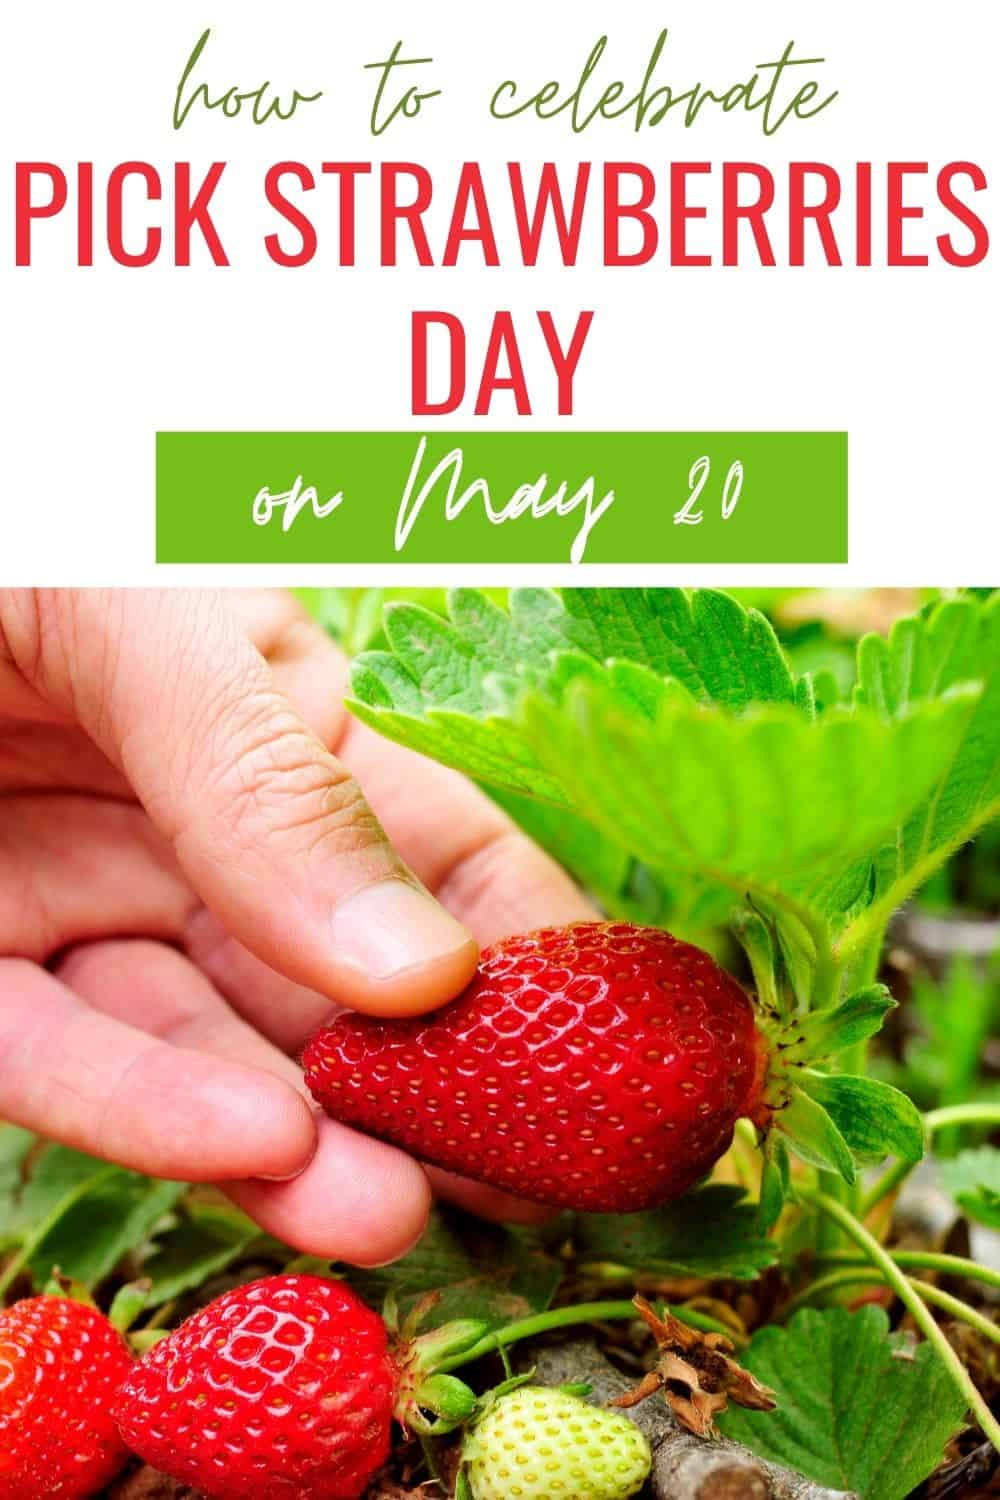 How to celebrate pick strawberries day on May 20